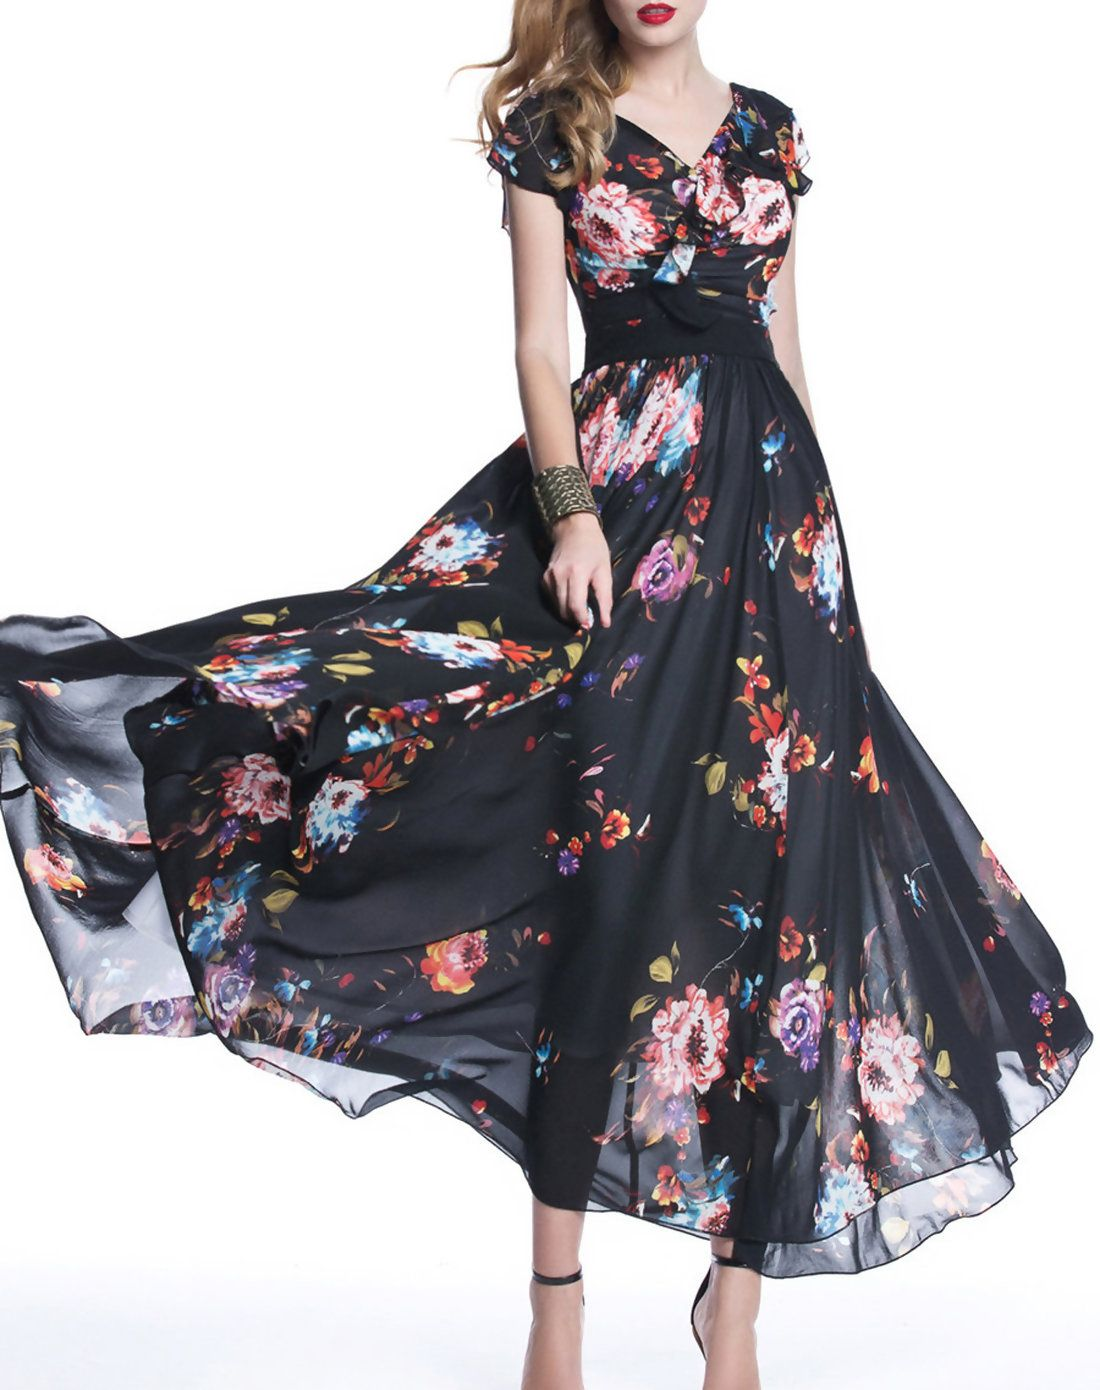 a8ad69c482f89  VIPme New Floral Short Sleeve Boho V Neck A-line Maxi Dress ❤ Get more  outfit ideas and style inspiration from fashion designers at VIPme.com.